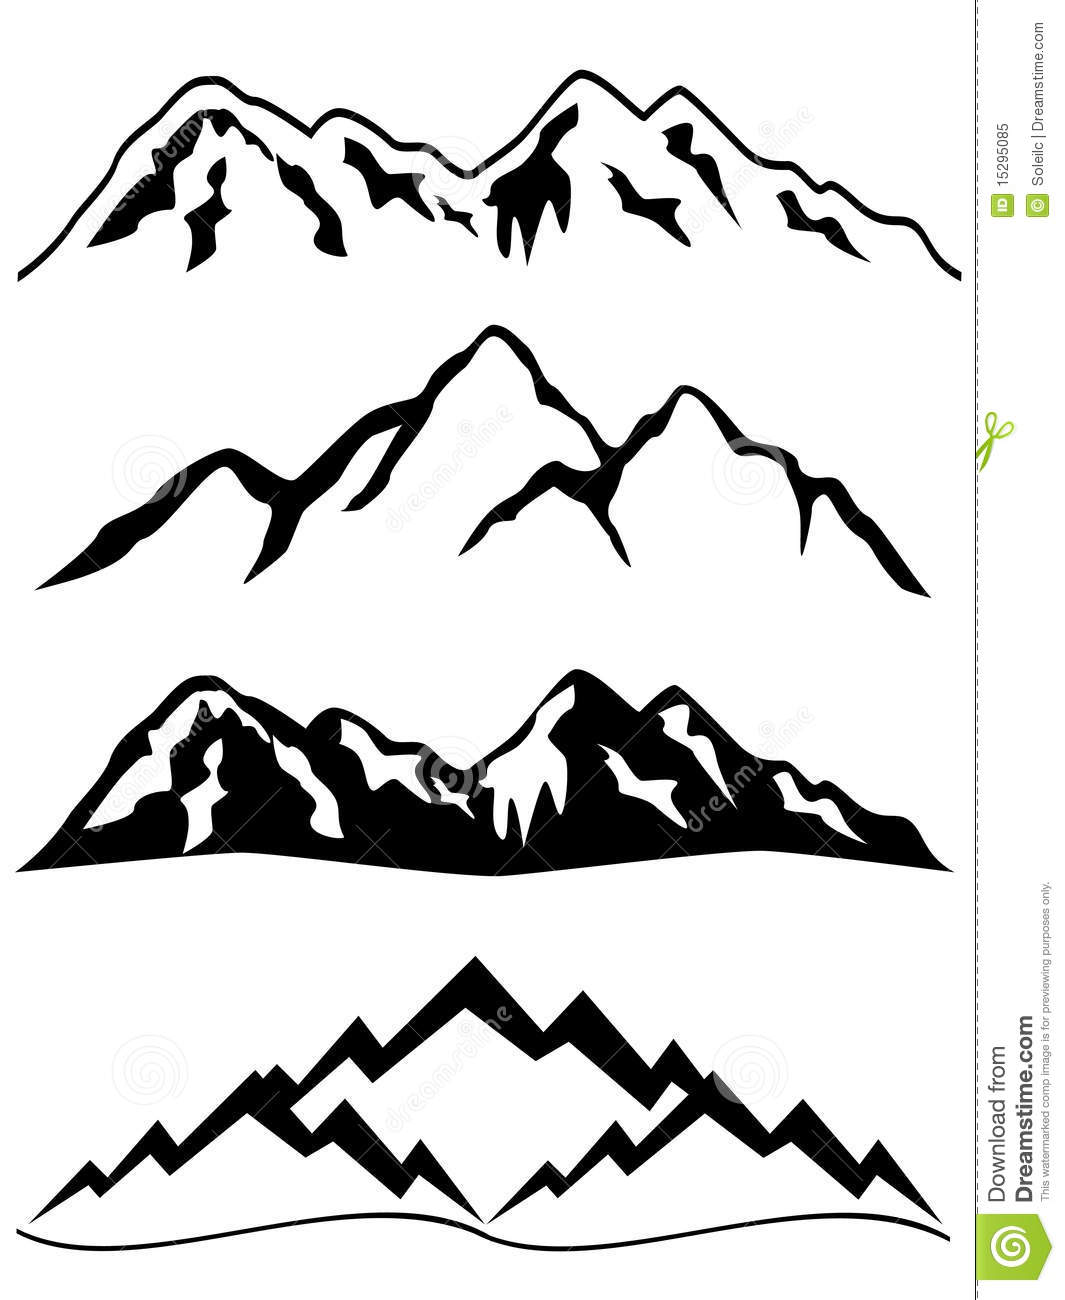 mountains with snow royalty free stock photo image 15295085